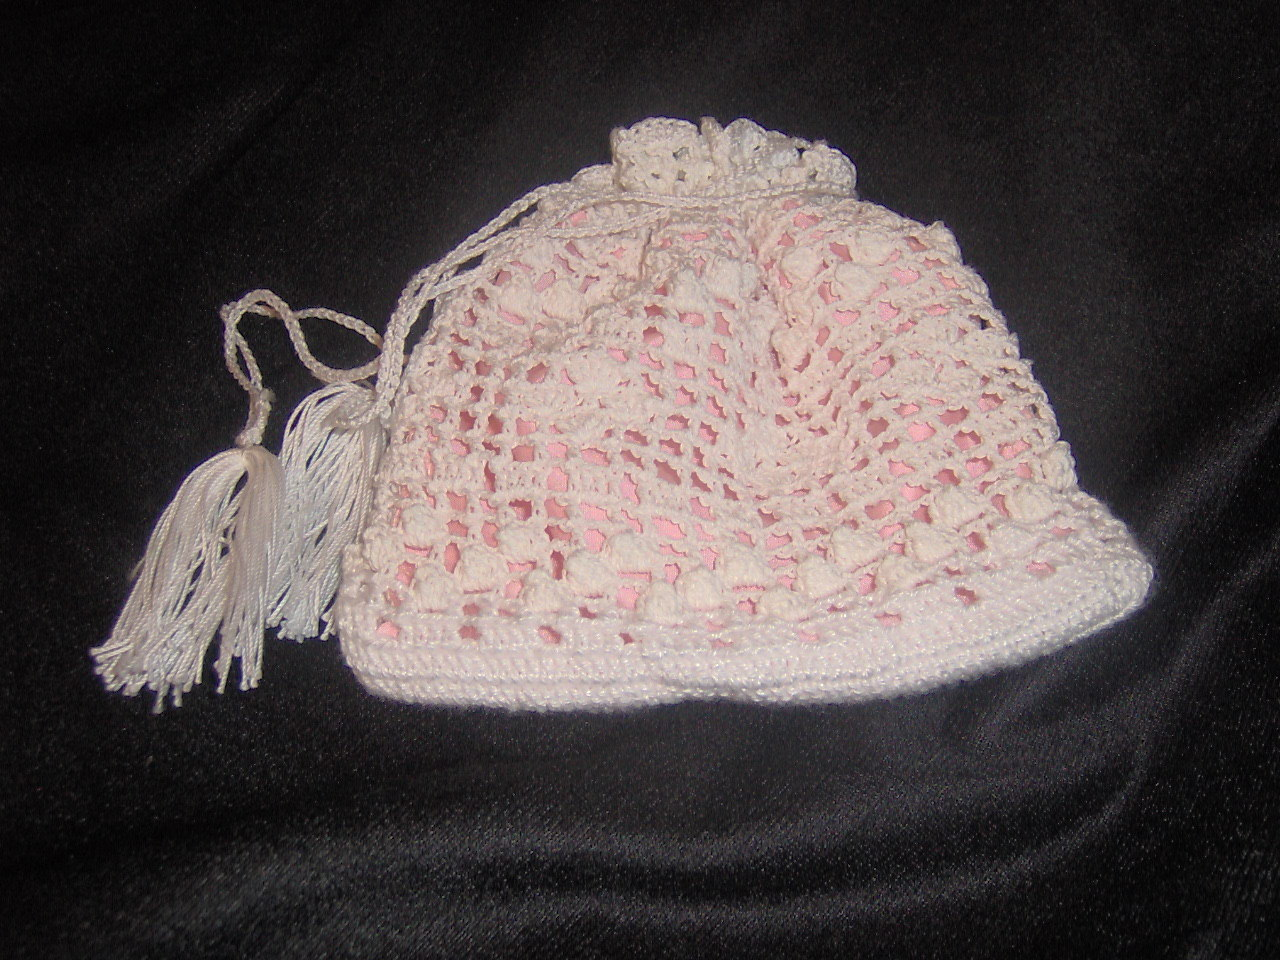 Primary image for Crochet lace wedding purse